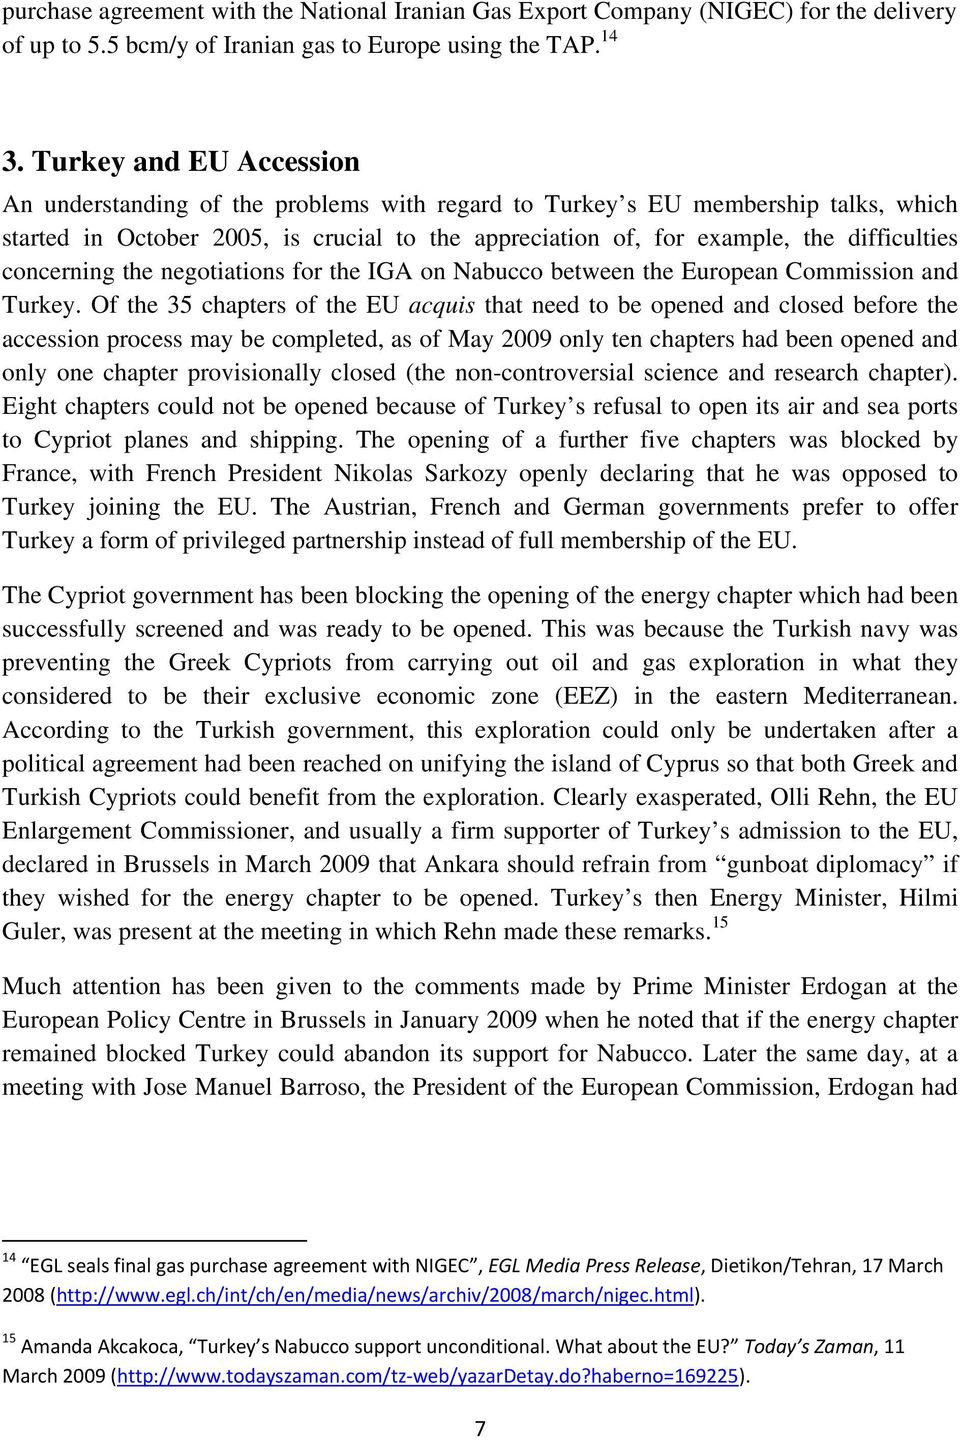 concerning the negotiations for the IGA on Nabucco between the European Commission and Turkey.